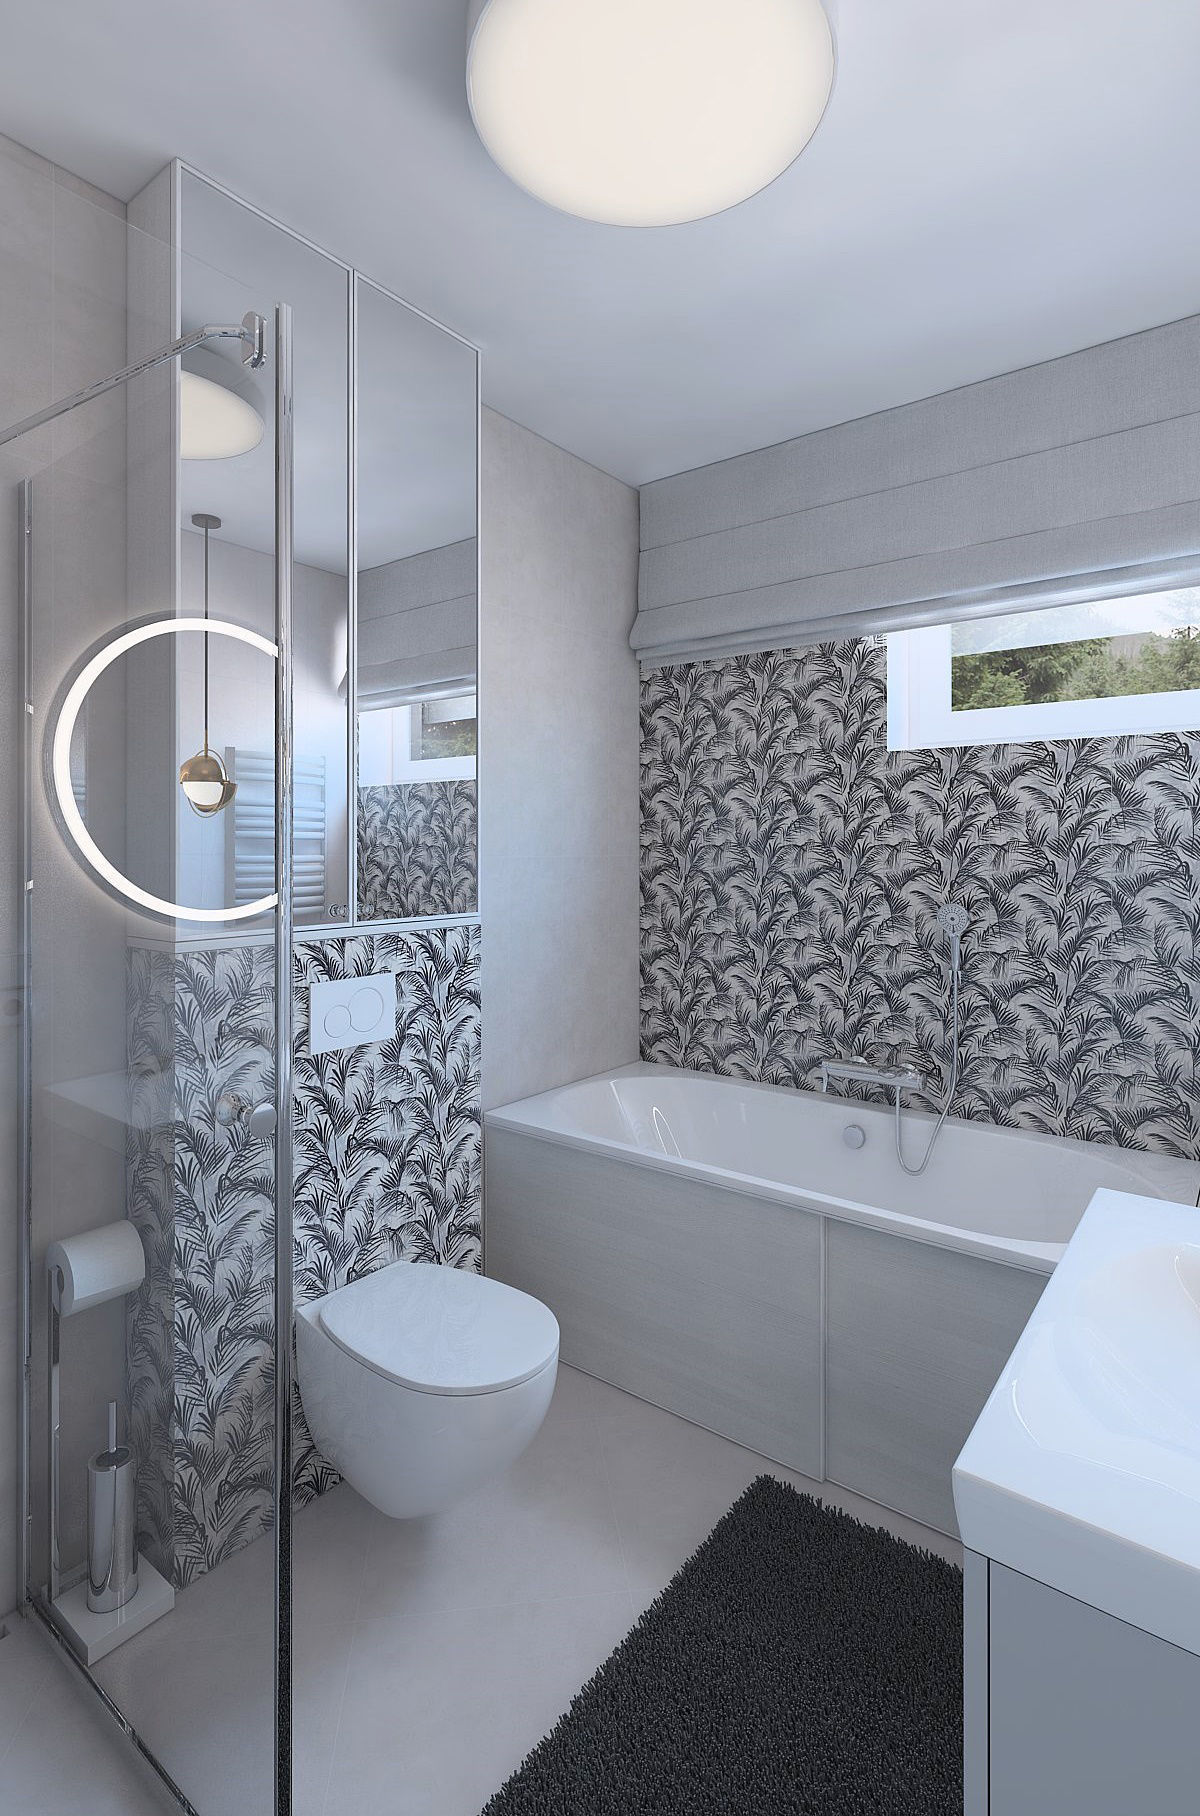 Great bathroom with decorative plant tiles 3D model